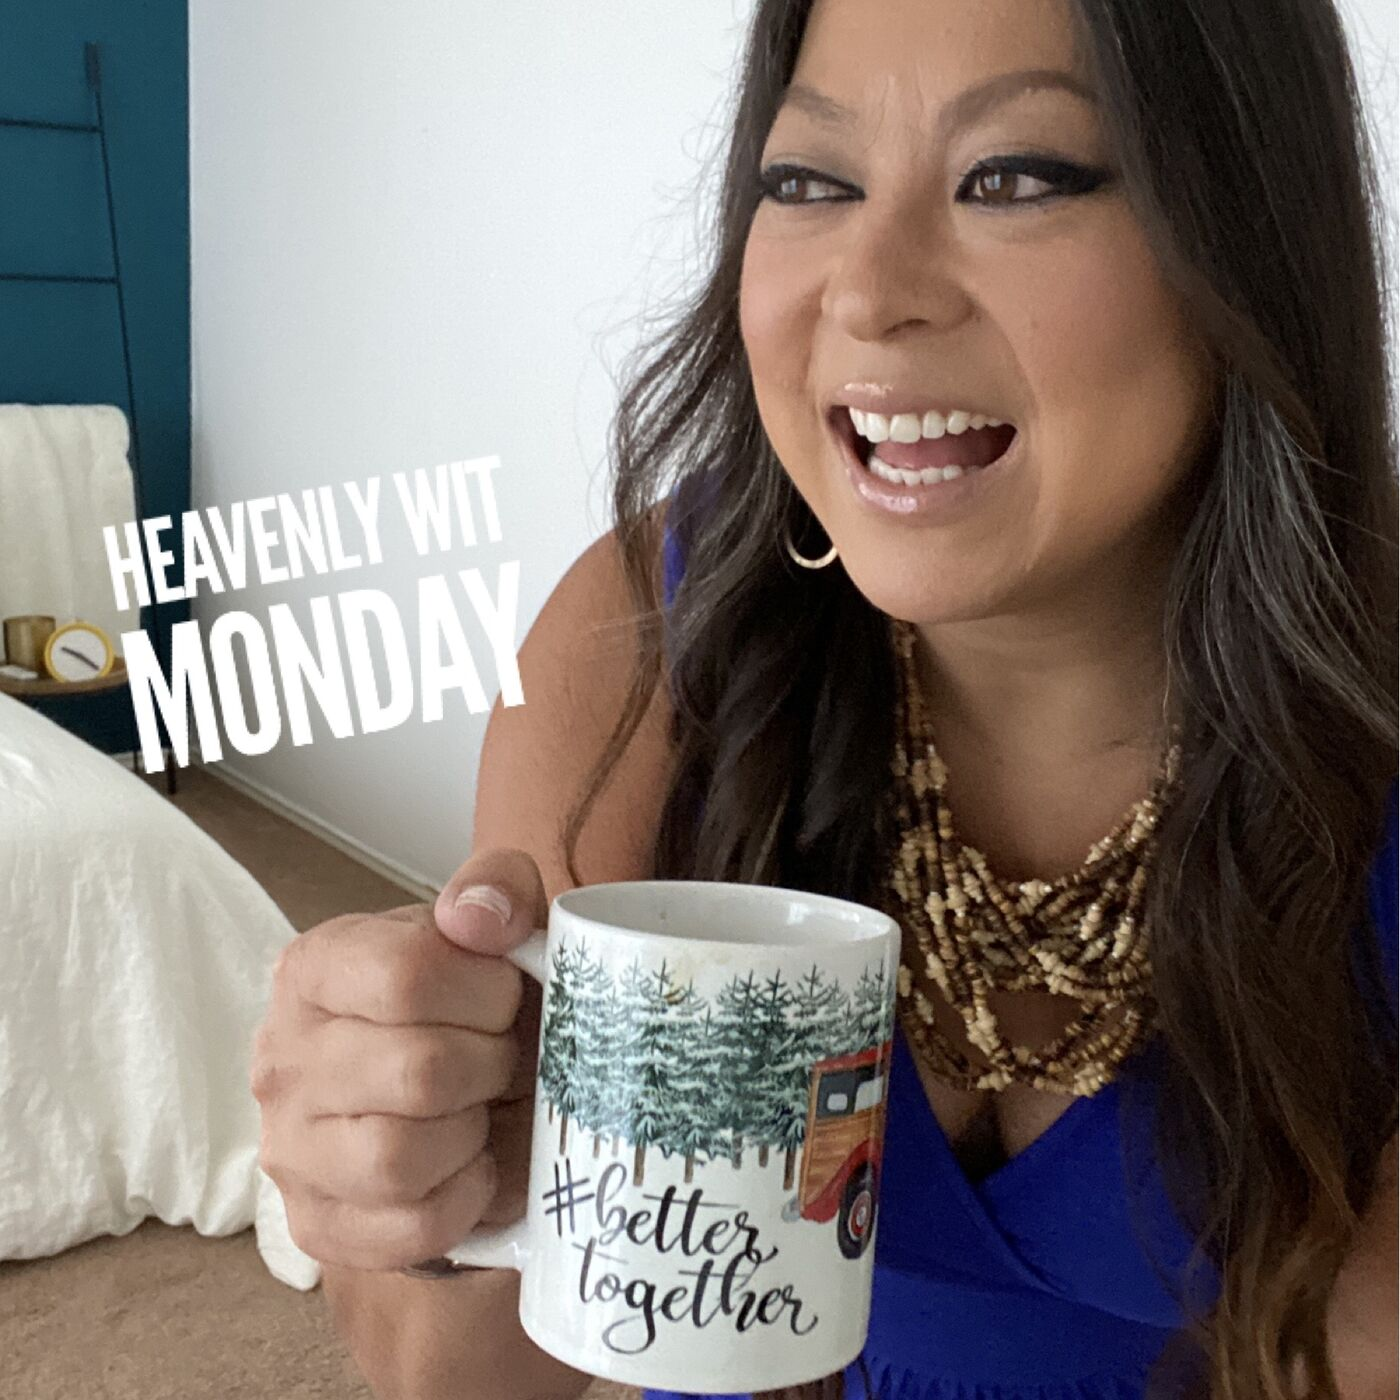 HEAVENLY WIT MONDAY   GETTING SET STRAIGHT